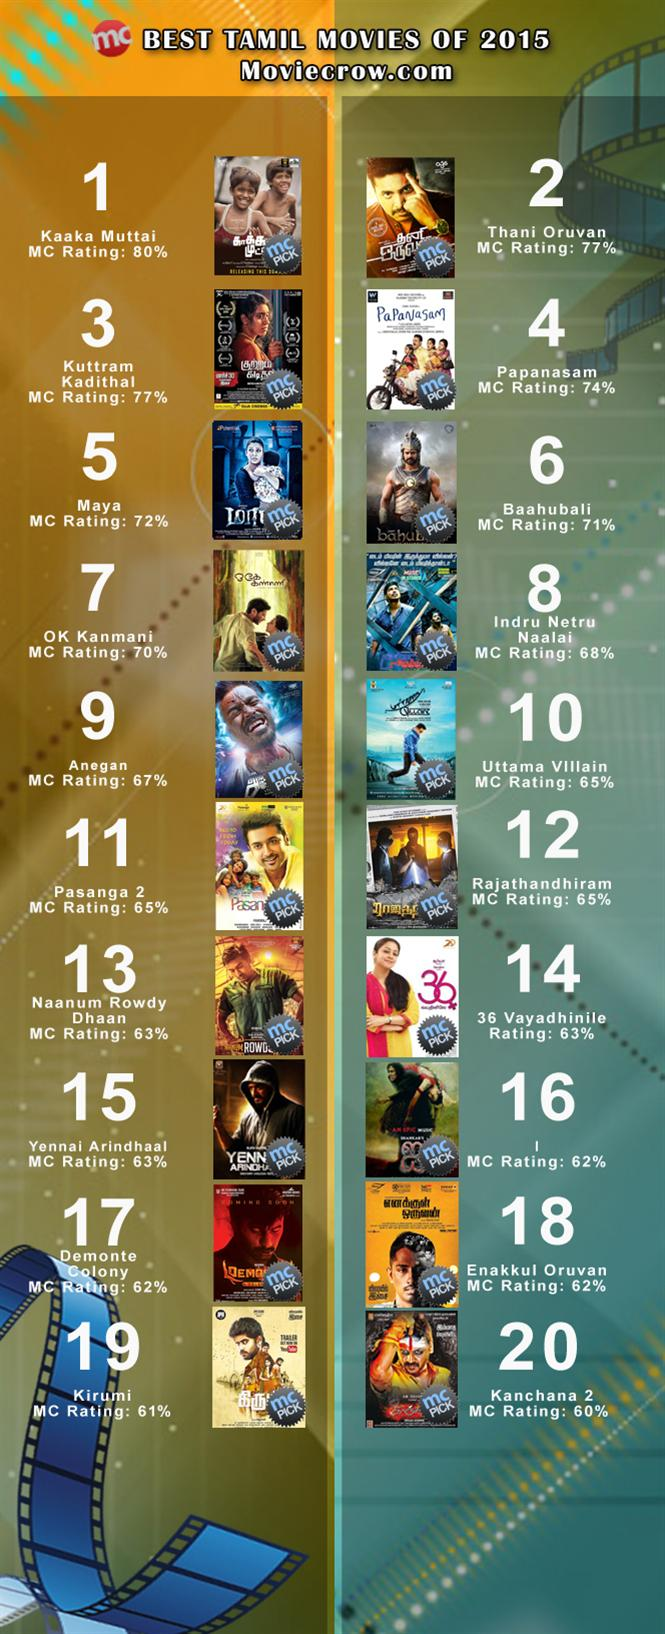 Best Tamil Movies of 2015